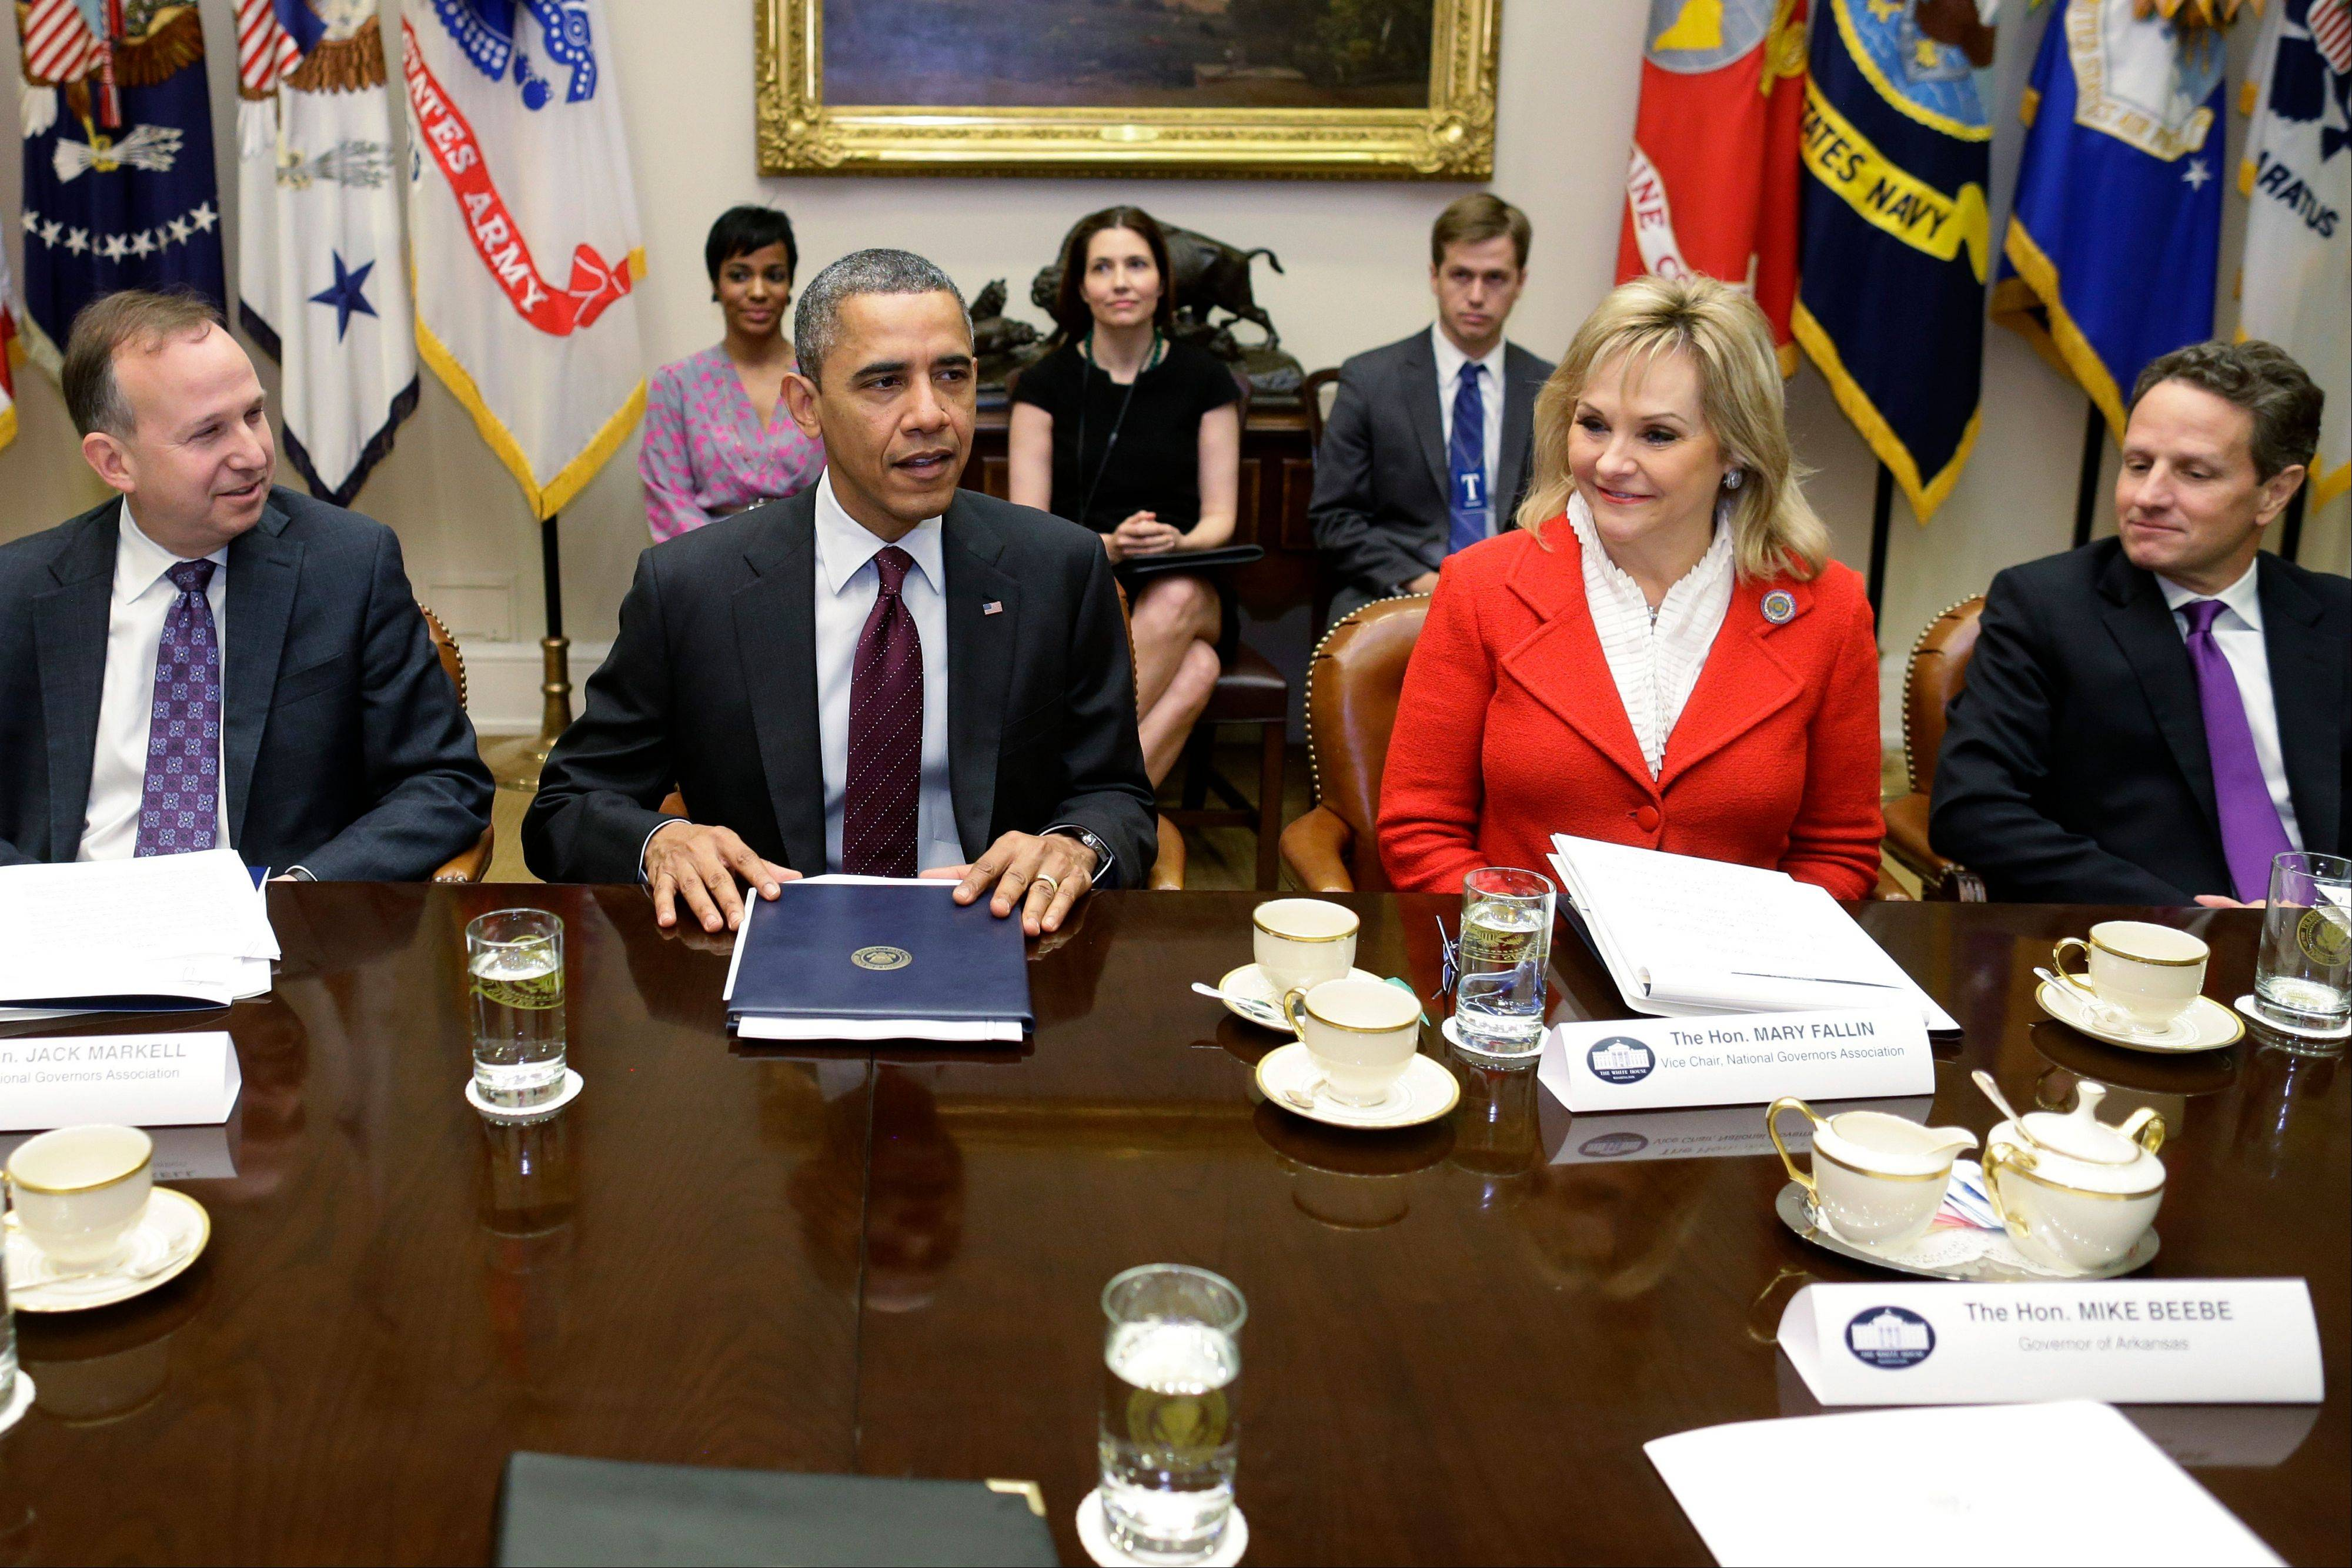 President Barack Obama, flanked by National Governors Association (NGA) Chairman, Delaware Gov. Jack Markell, left, and NGA Vice Chair, Oklahoma Gov. Mary Fallin, meets with the NGA executive committee regarding the fiscal cliff Tuesday at the White House. Treasury Secretary Tim Geithner is at right.